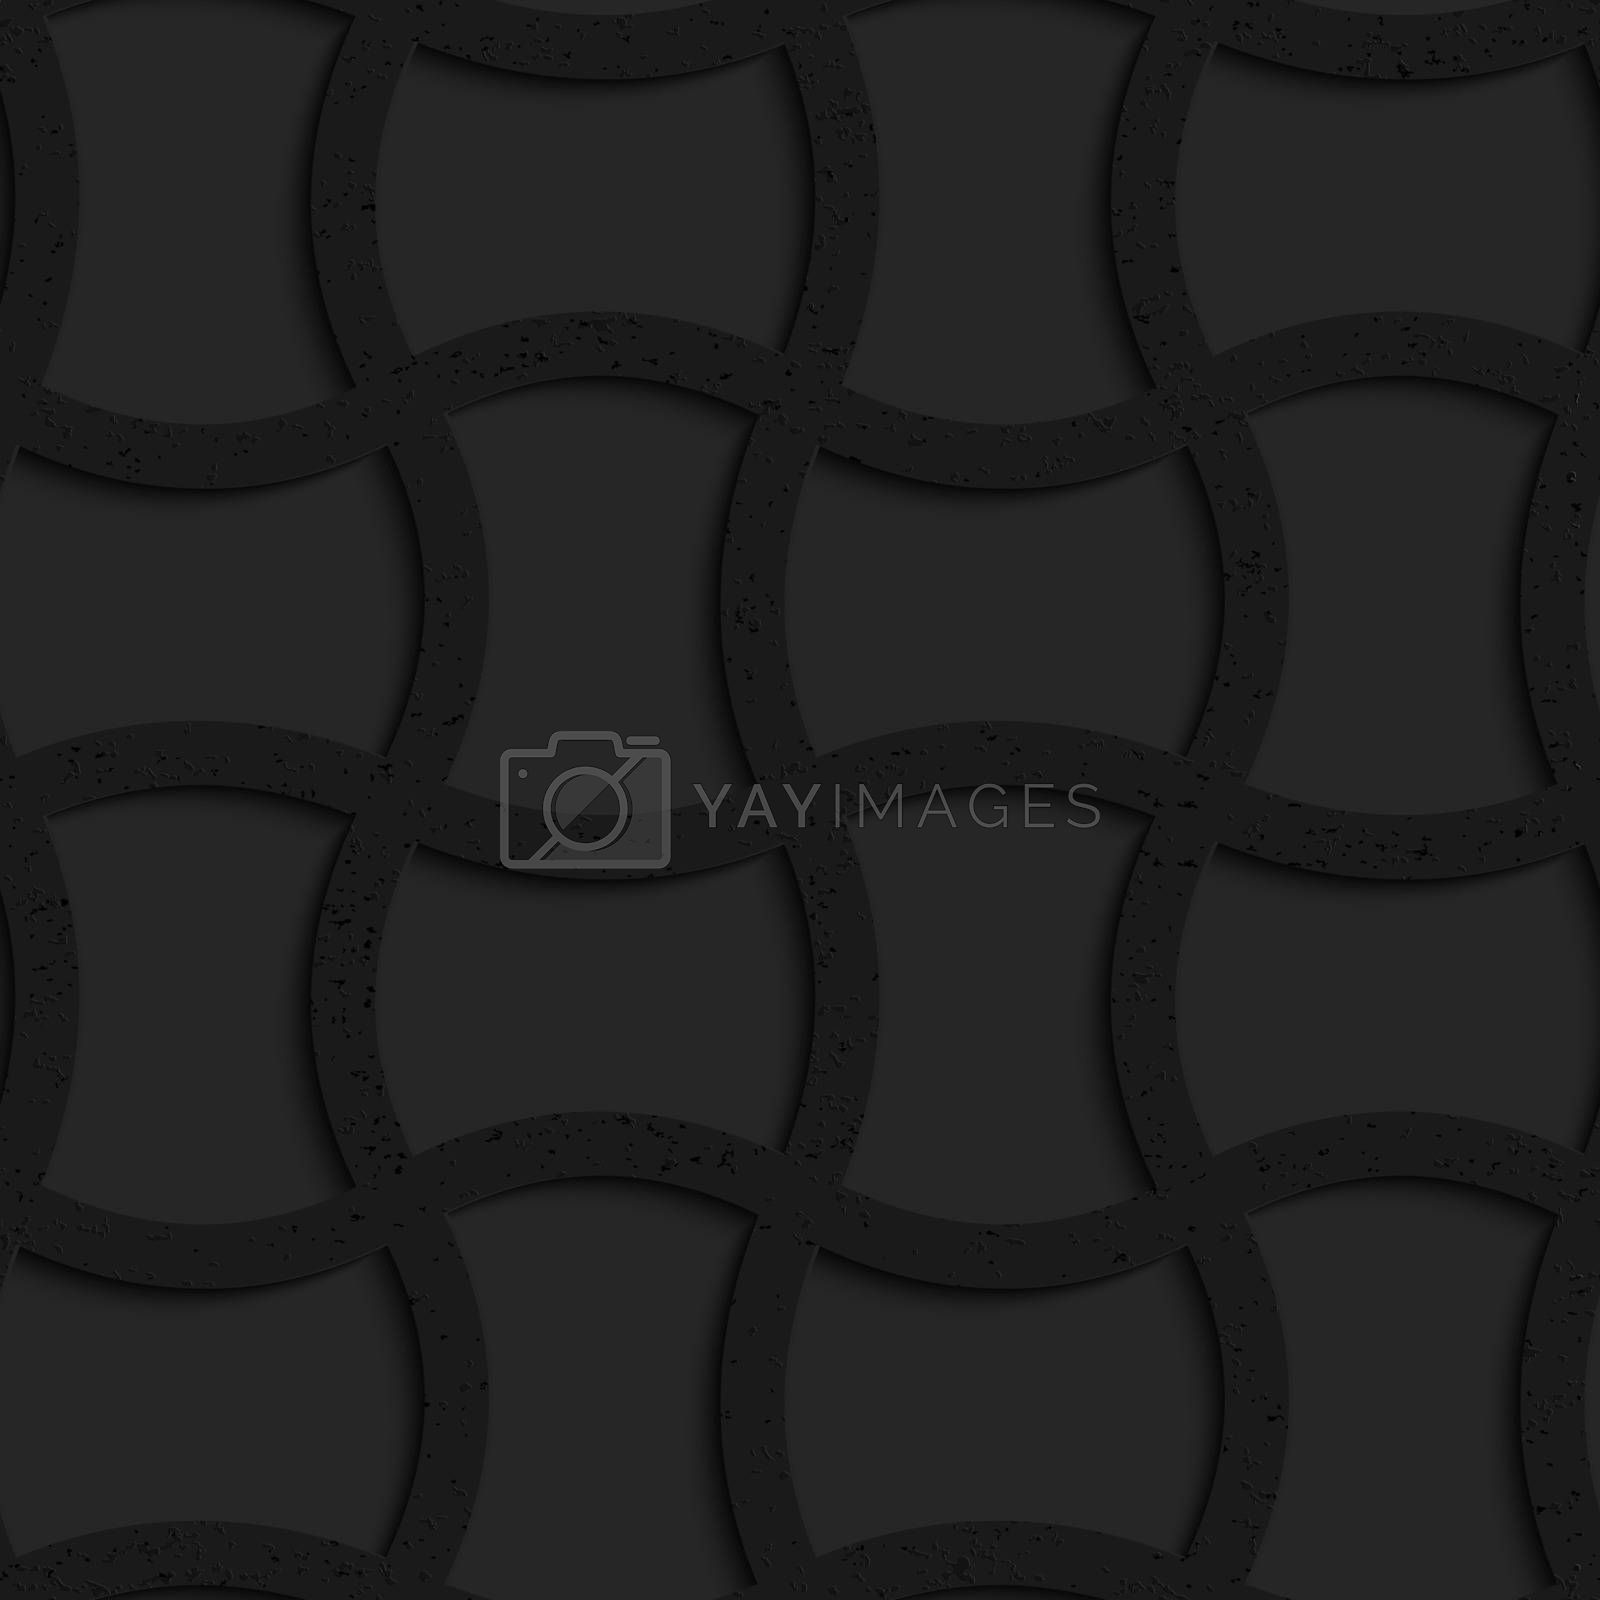 Seamless geometric background. Pattern with 3D texture and realistic shadow.Textured black plastic arched rectangles grid.